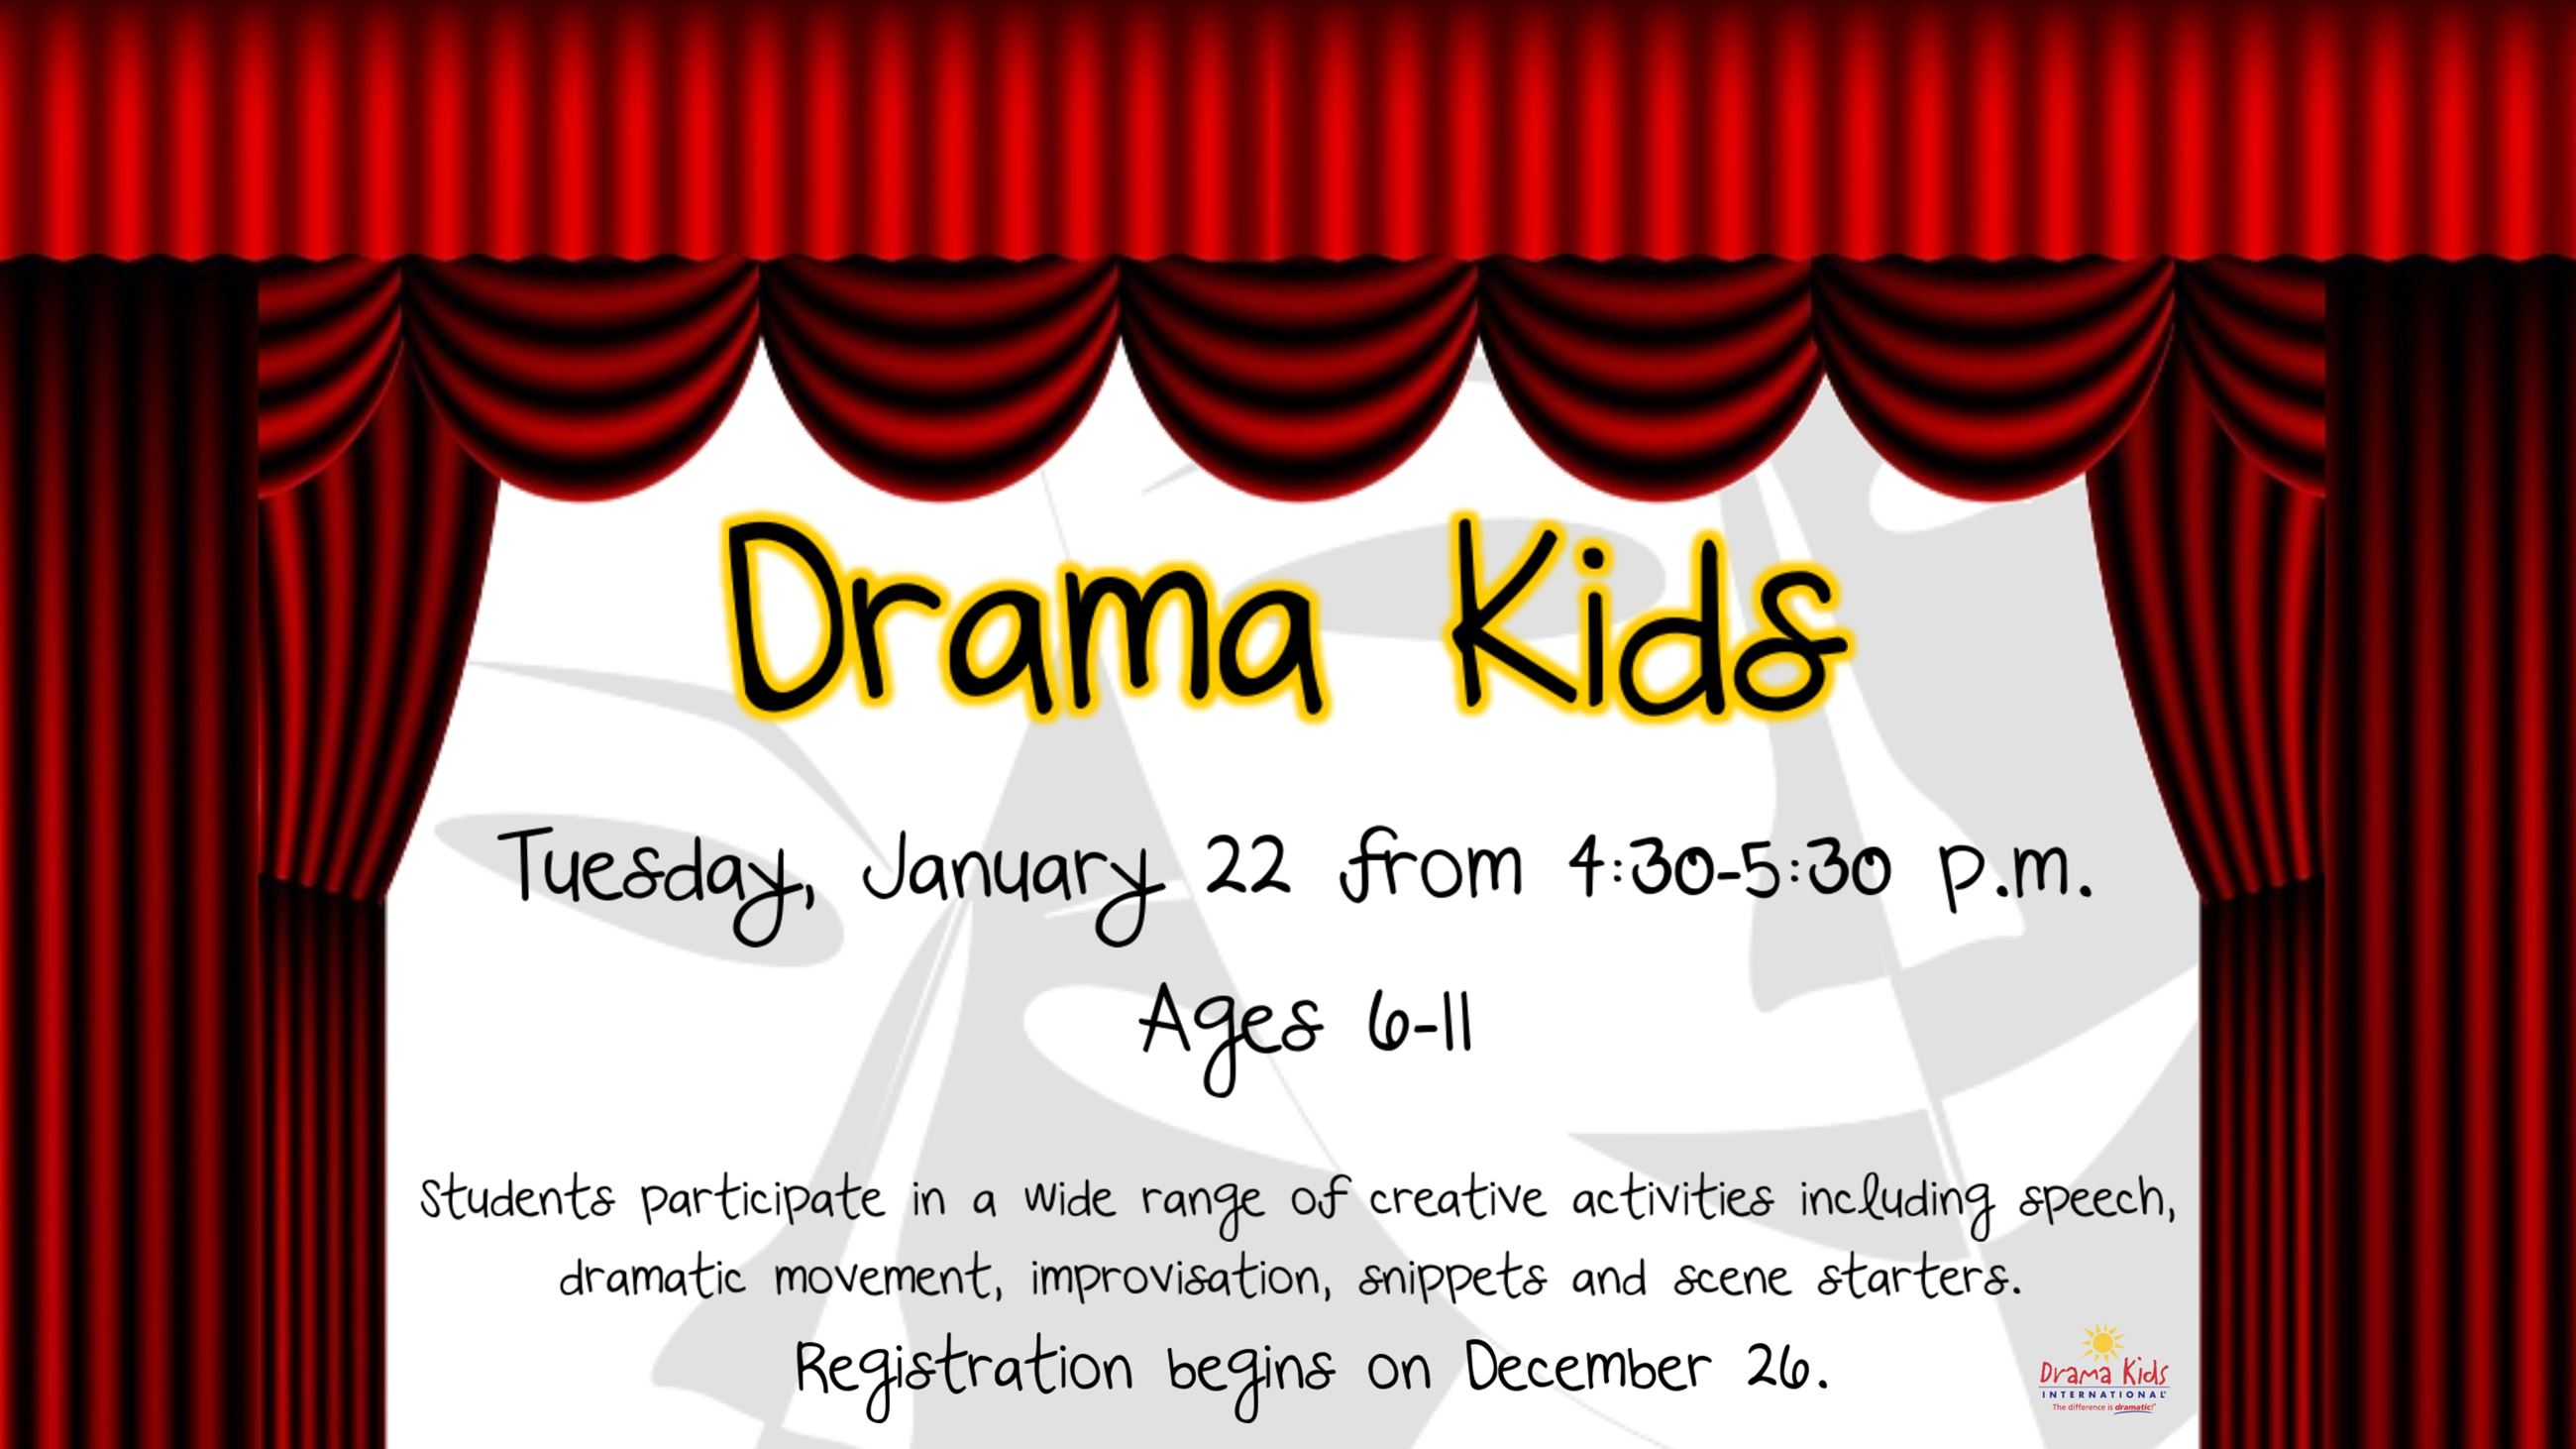 Drama Kids. January 22 from 4:30 to 5:30. Ages 6 to 11. Registration begins December 26.